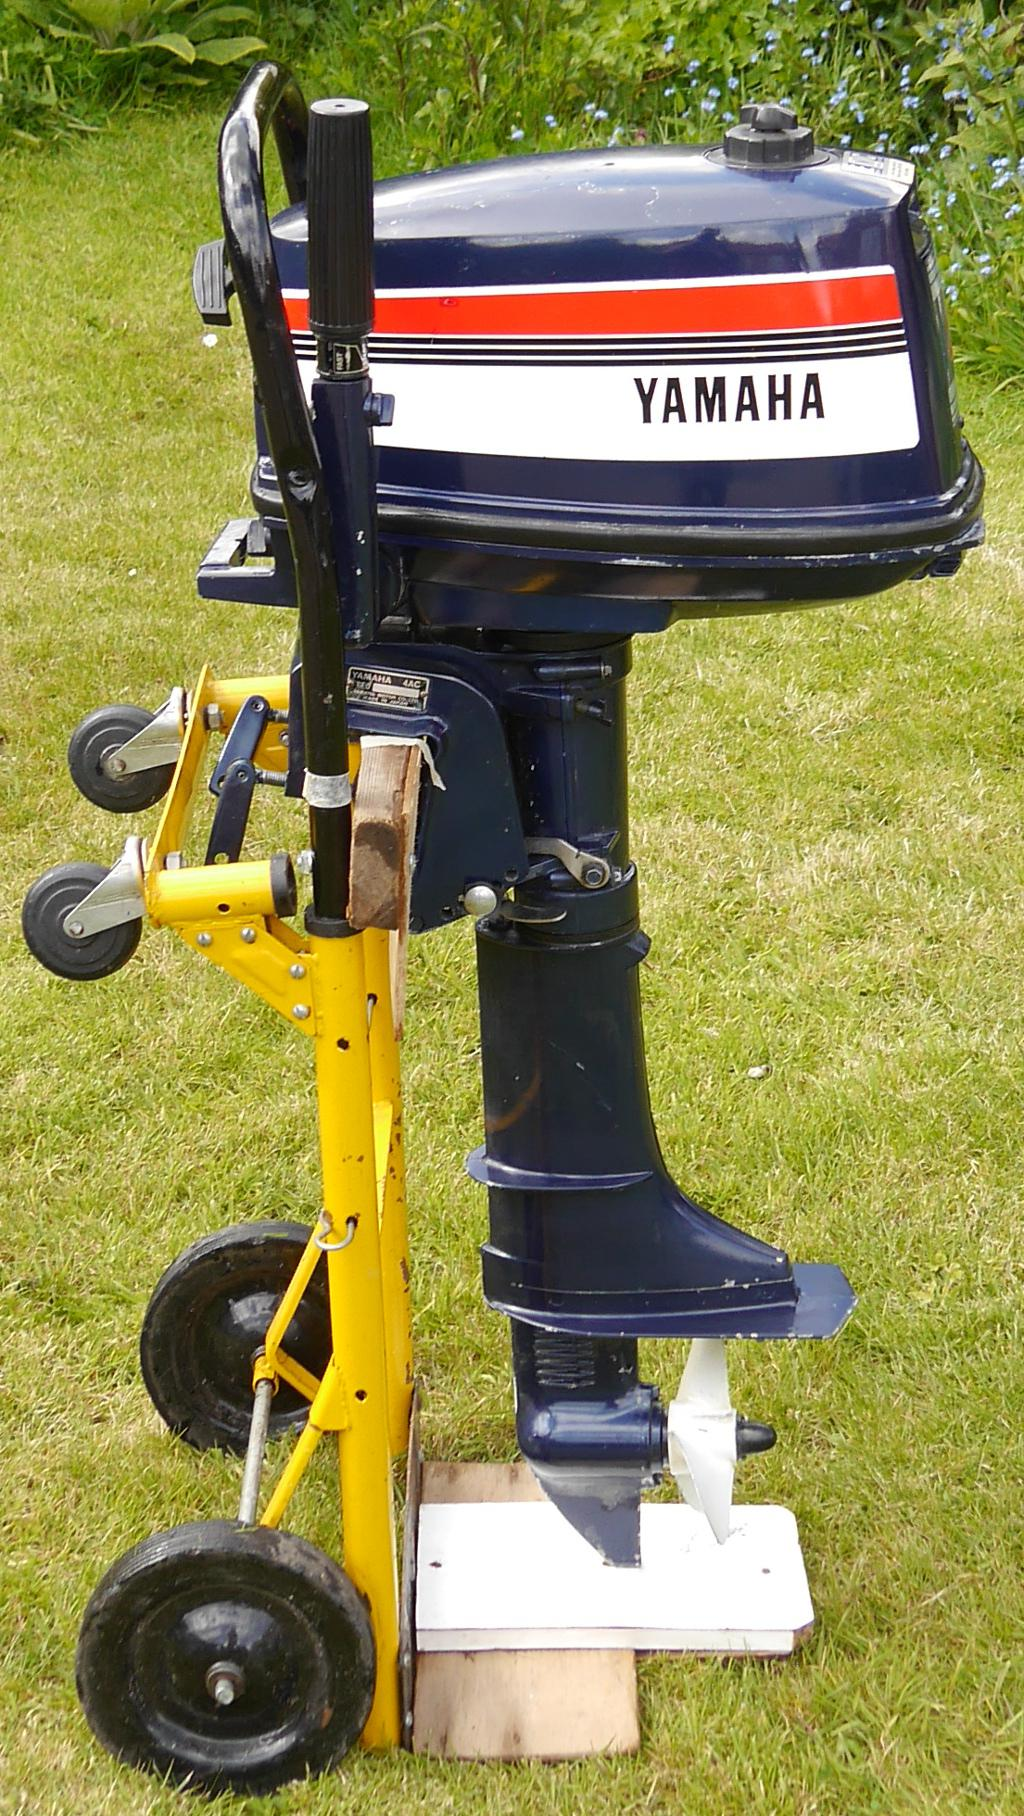 4hp yamaha outboard for sale the official norfolk broads for 4 stroke motors for sale